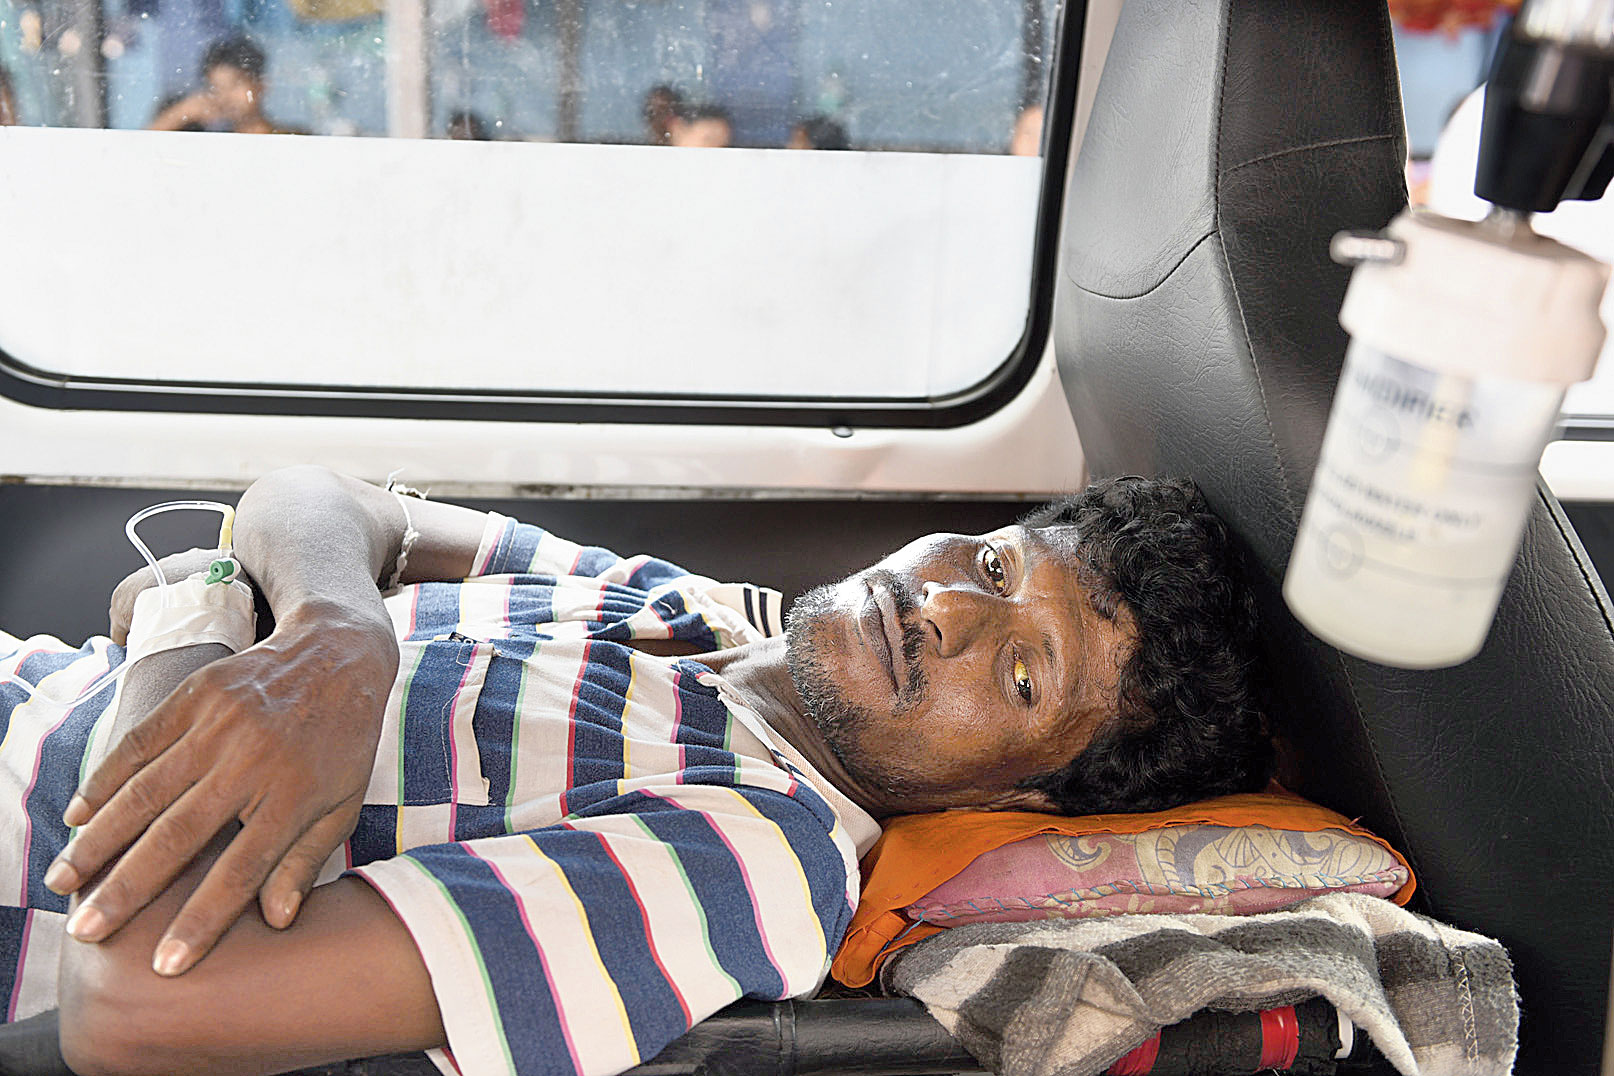 Ainul Mandal, a daily wage earner, was brought to the RG Kar Medical College and Hospital from Ashoknagar in Habra, North 24-Parganas, with jaundice.